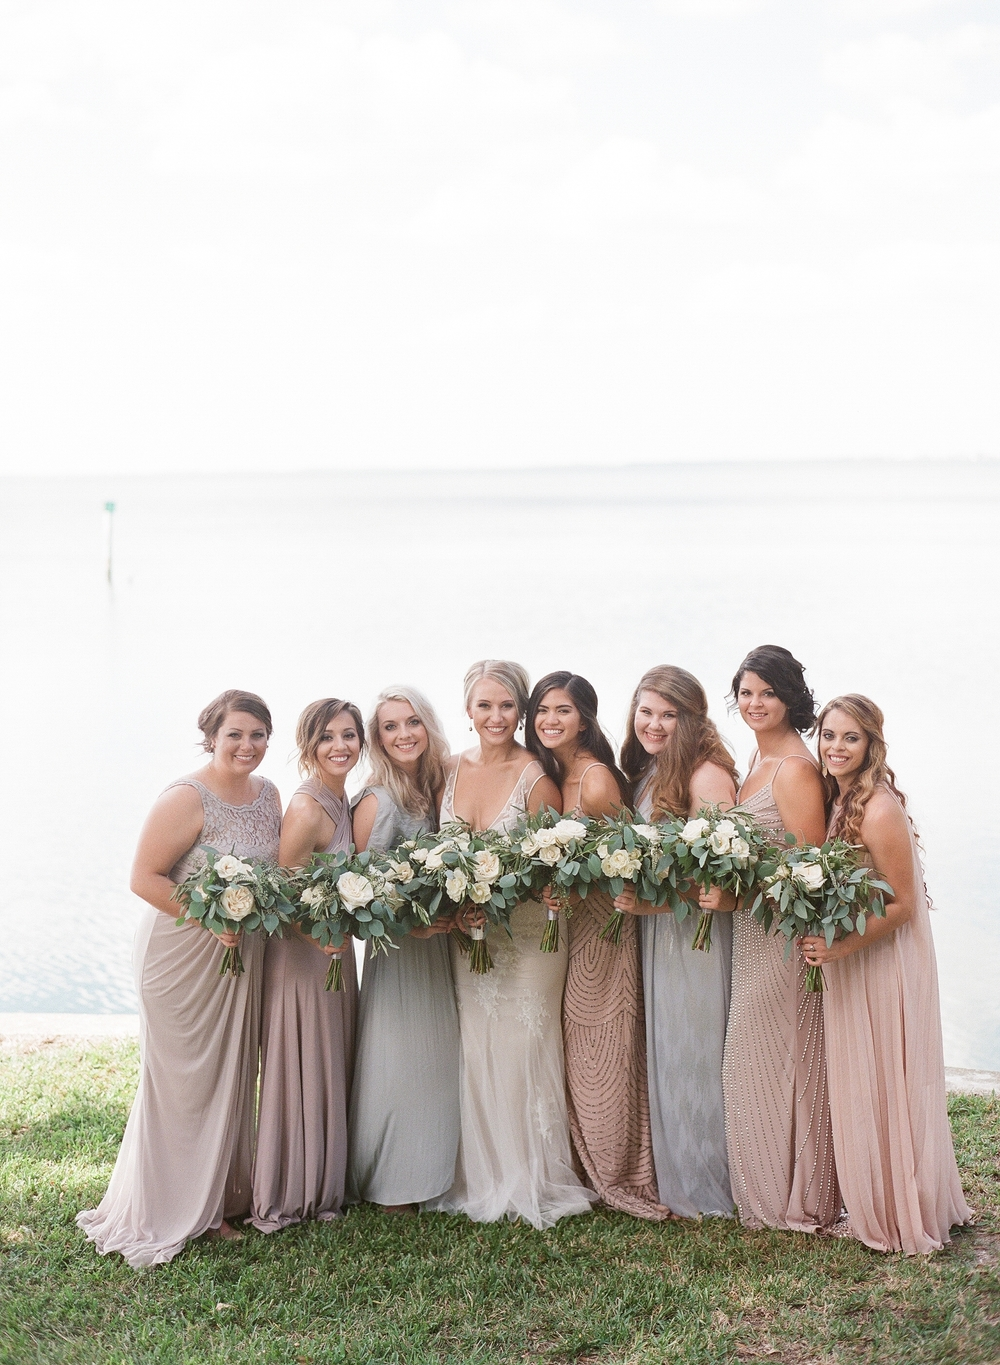 Dave Lapham Photography | Wedding Photos | Powel Crosley Estate | Bridal Party